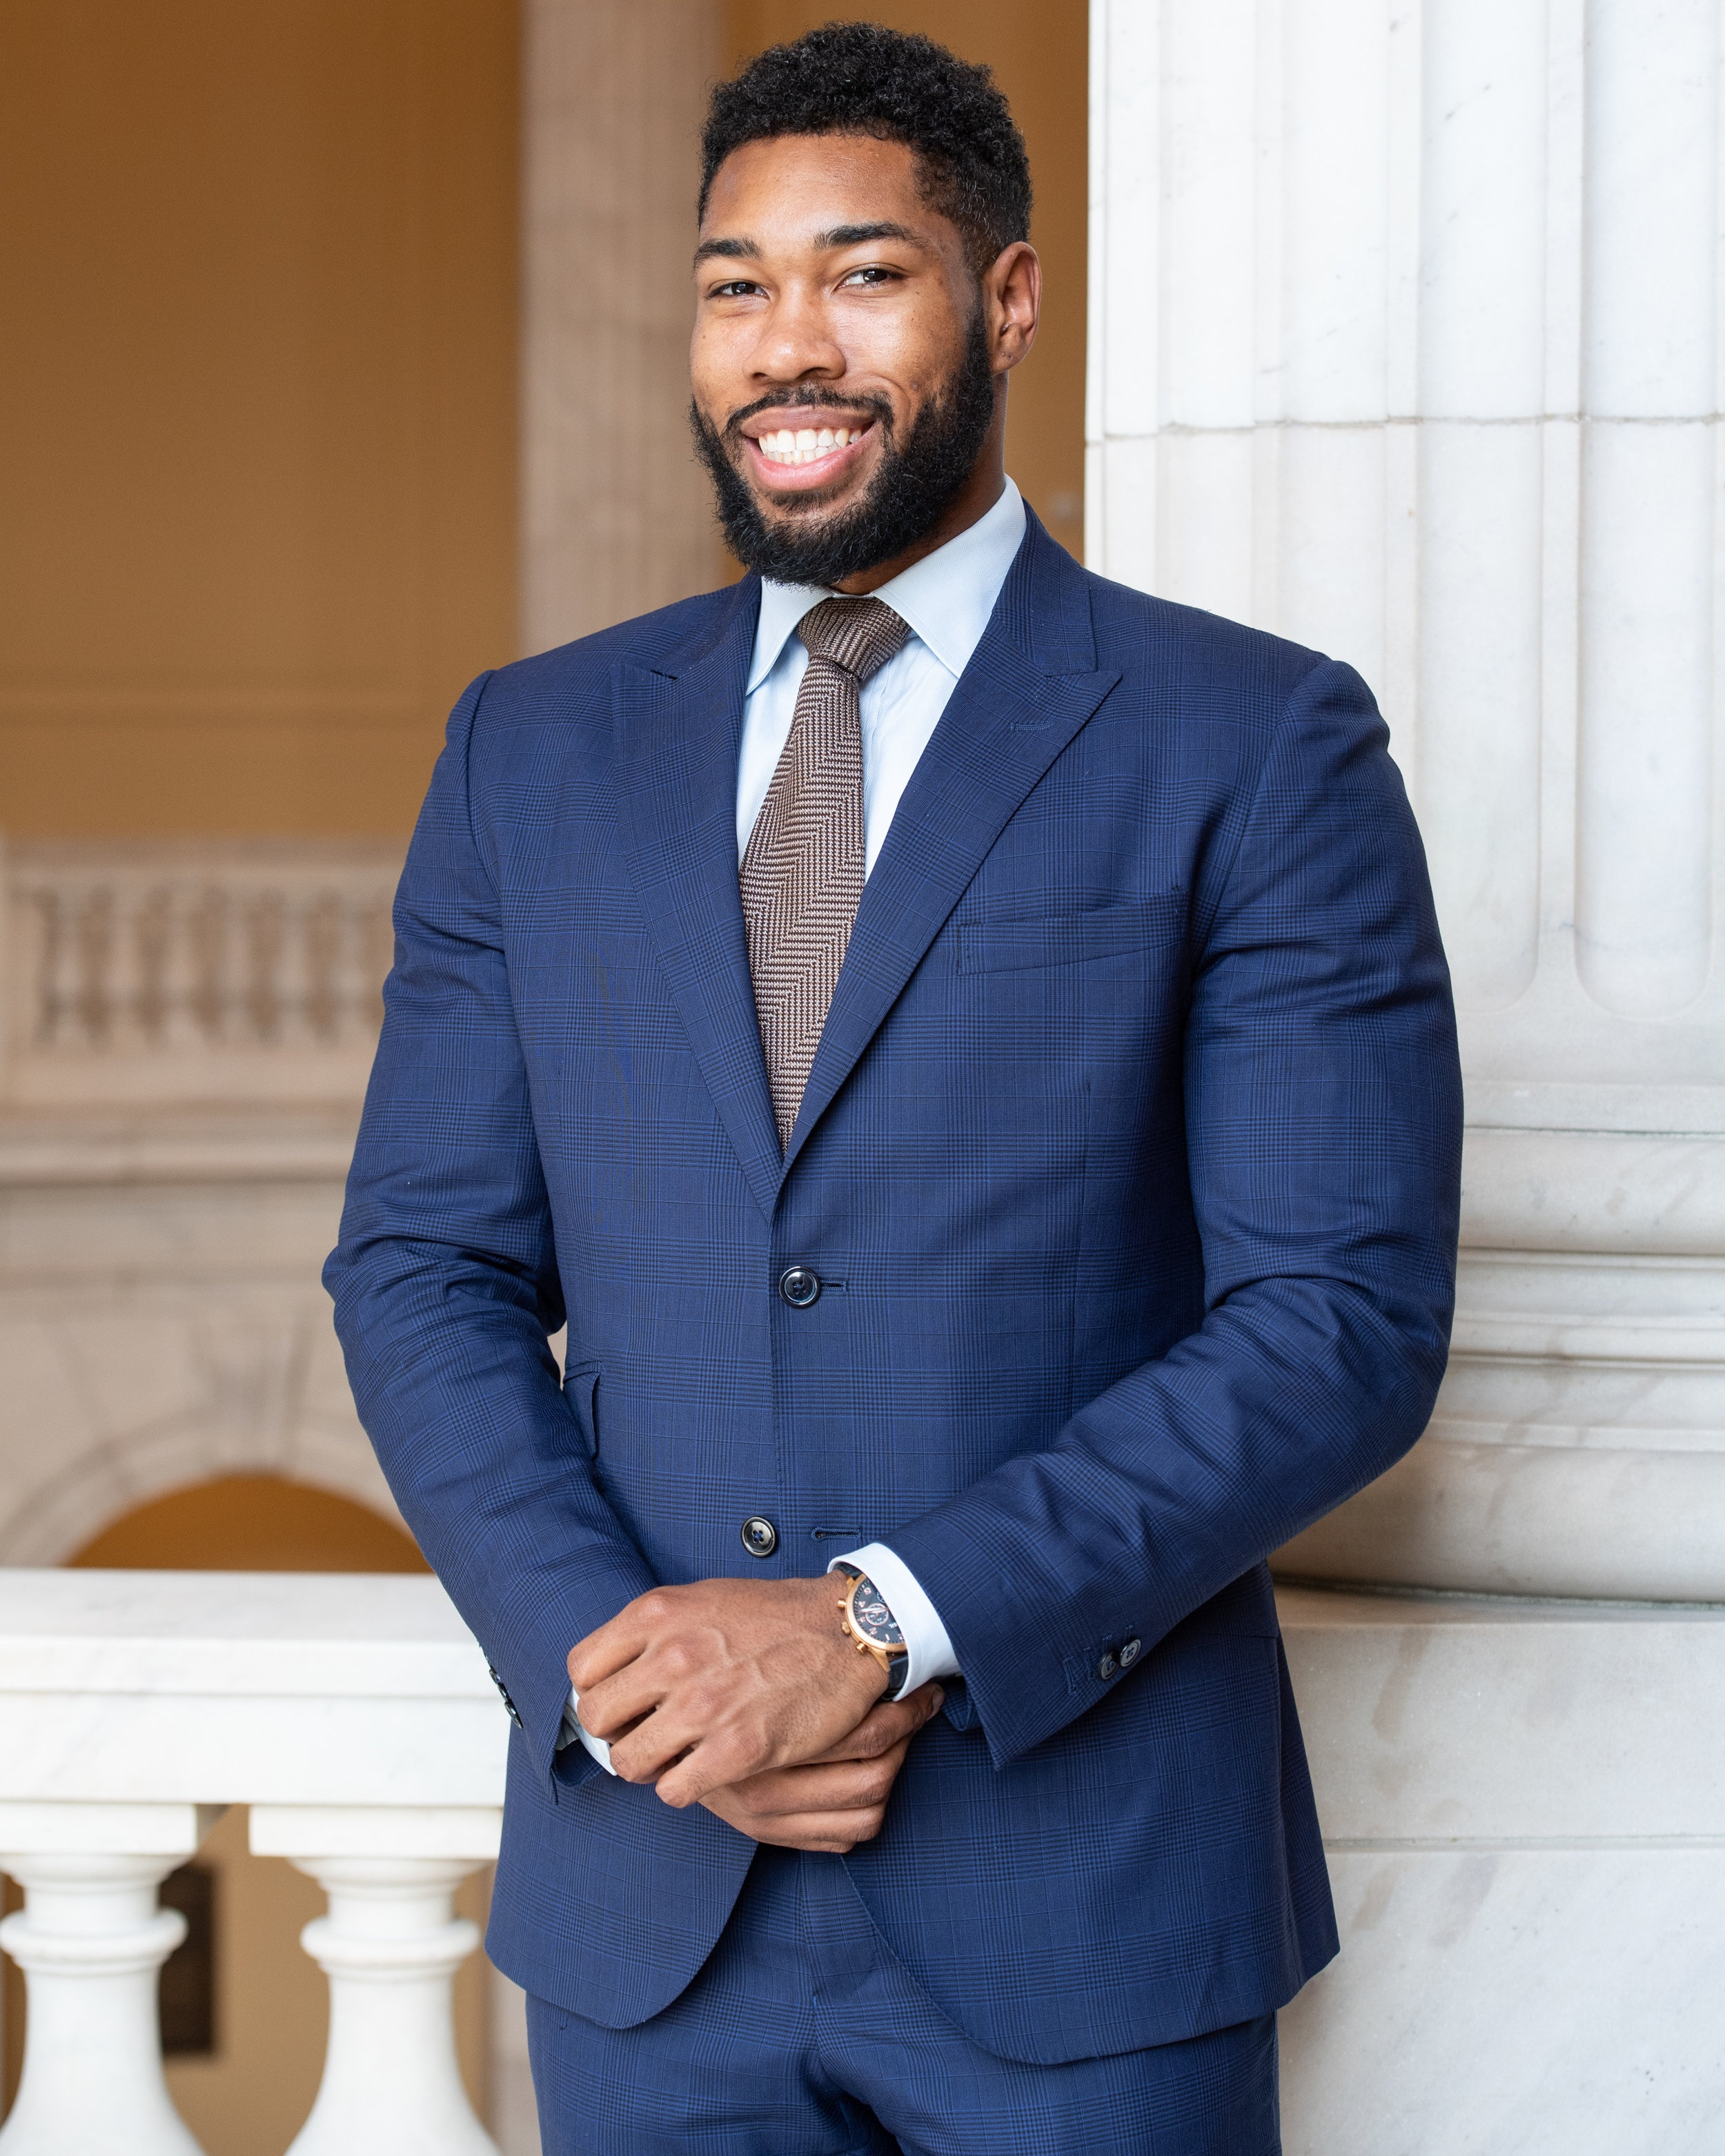 parliamentarian - Paul Nicholas serves as the Staff Assistant in the office of Congressman Steny Hoyer (MD-05). He has been a member of CBA since 2016 where he was an intern in the office Congressman Elijah Cummings (MD-07) as well as the Committee on House administration. Paul grew up in Prince George's County, Maryland and graduated from the University of Maryland, College park where he focused in Public Policy and Business Administration. He is very proud to be part of the 2019 CBA executive board serving as Parliamentarian.